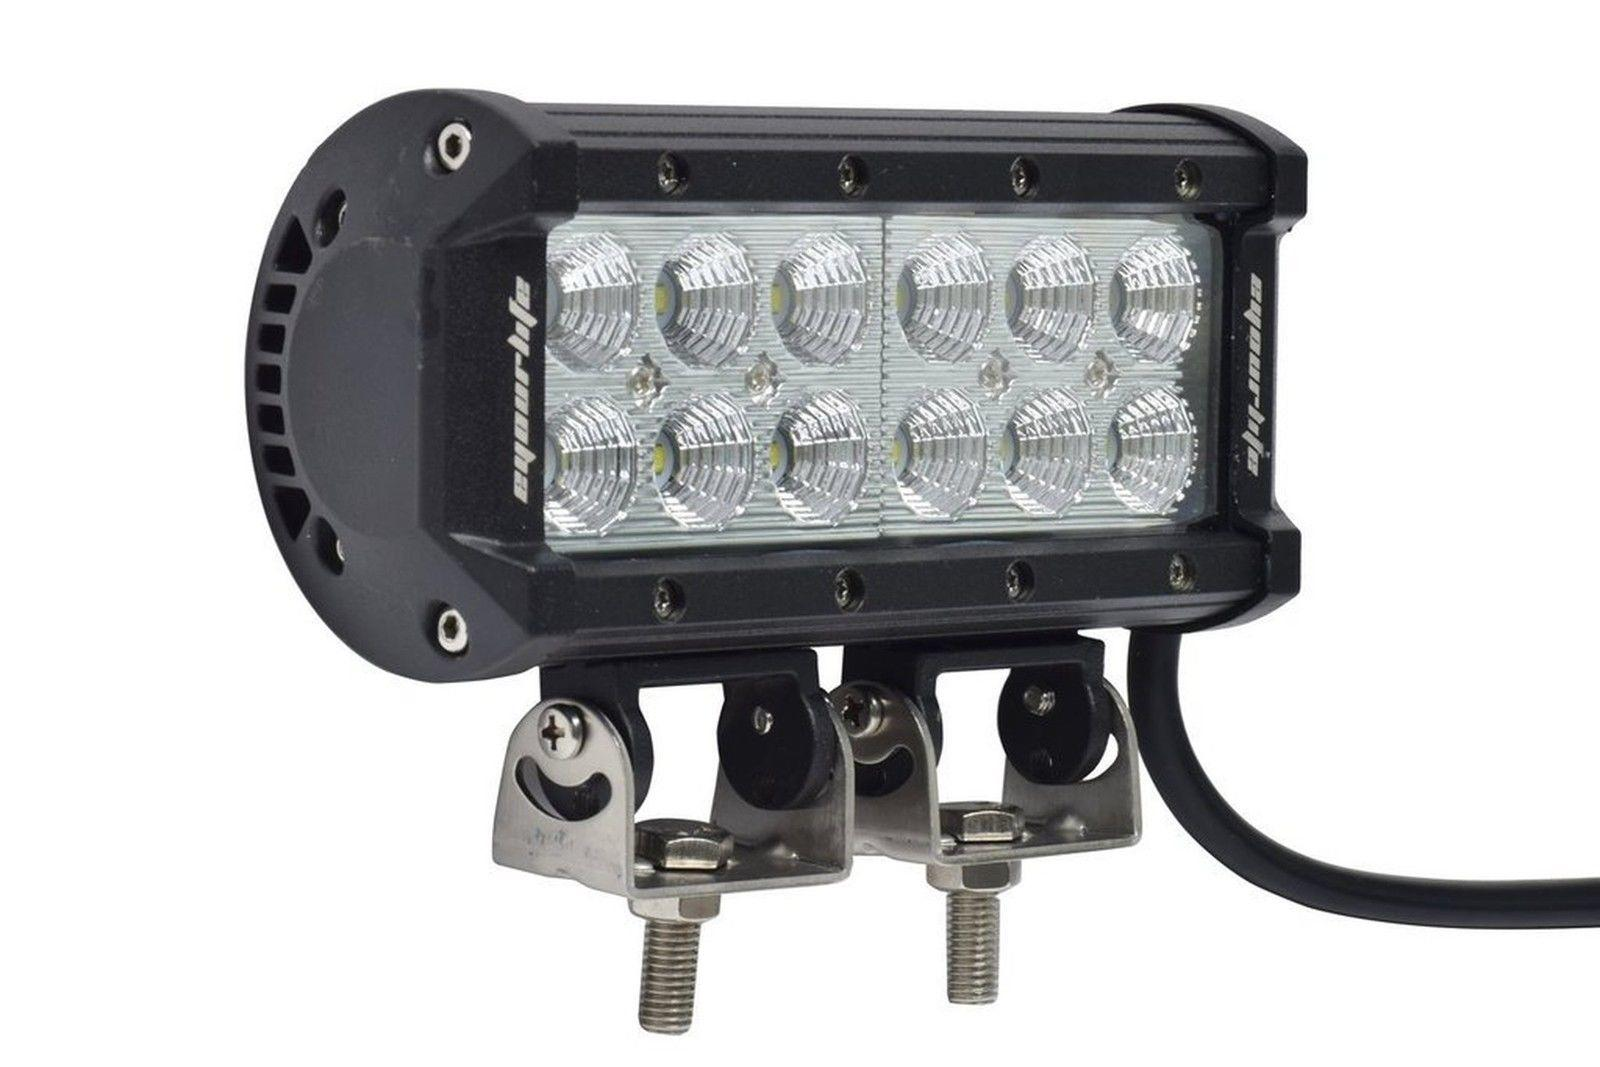 "Eyourlife Led Light Bar 7"" 36W Flood LED Work Light 12v Driving Lights, New"